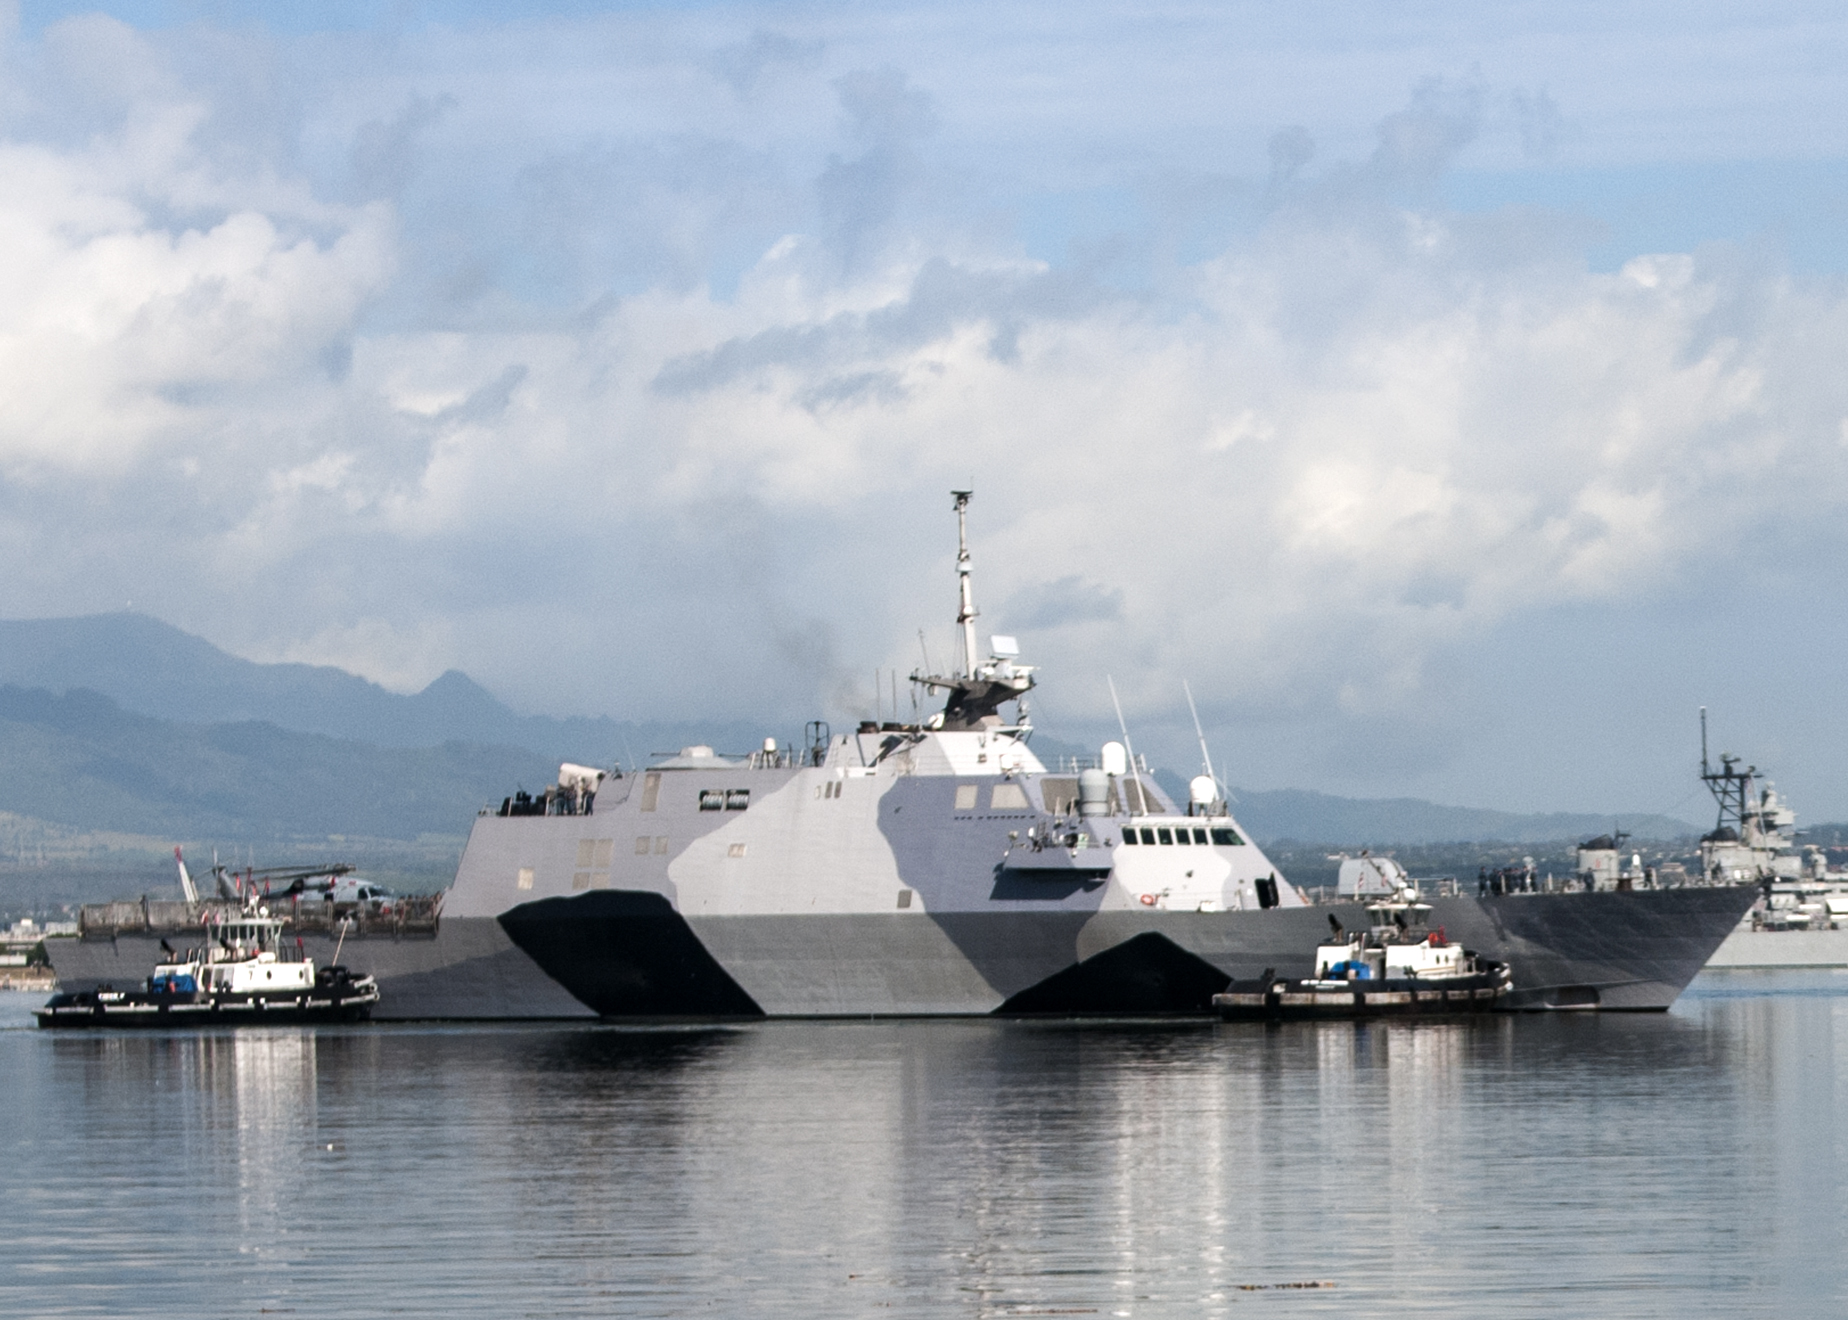 File the littoral combat ship uss freedom lcs 1 arrives at joint base pearl harbor hickam - Uss freedom lcs 1 photos ...